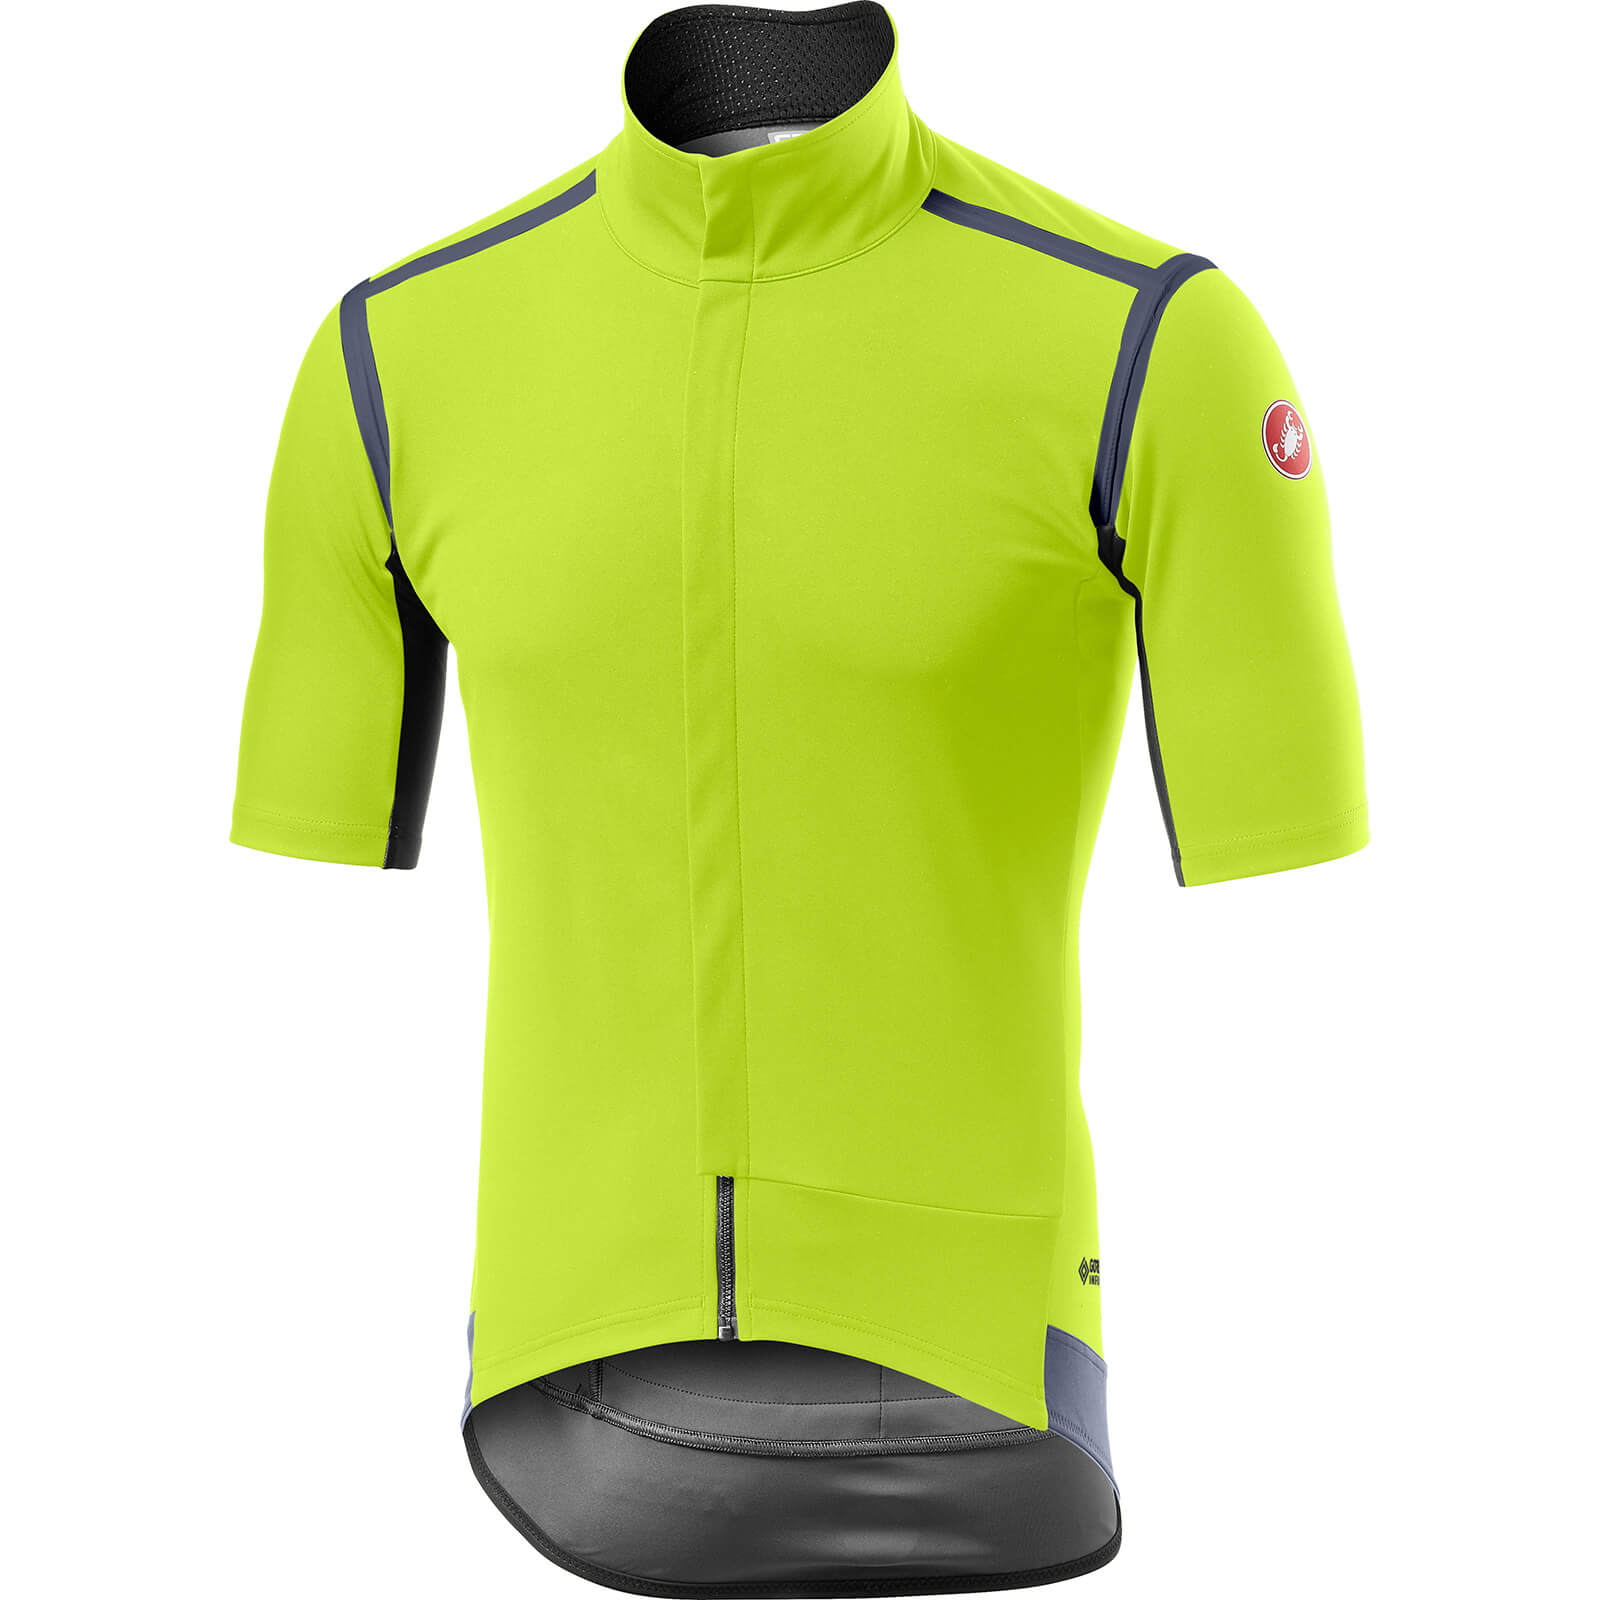 Image of Castelli Gabba RoS Jersey - L - Yellow Fluo